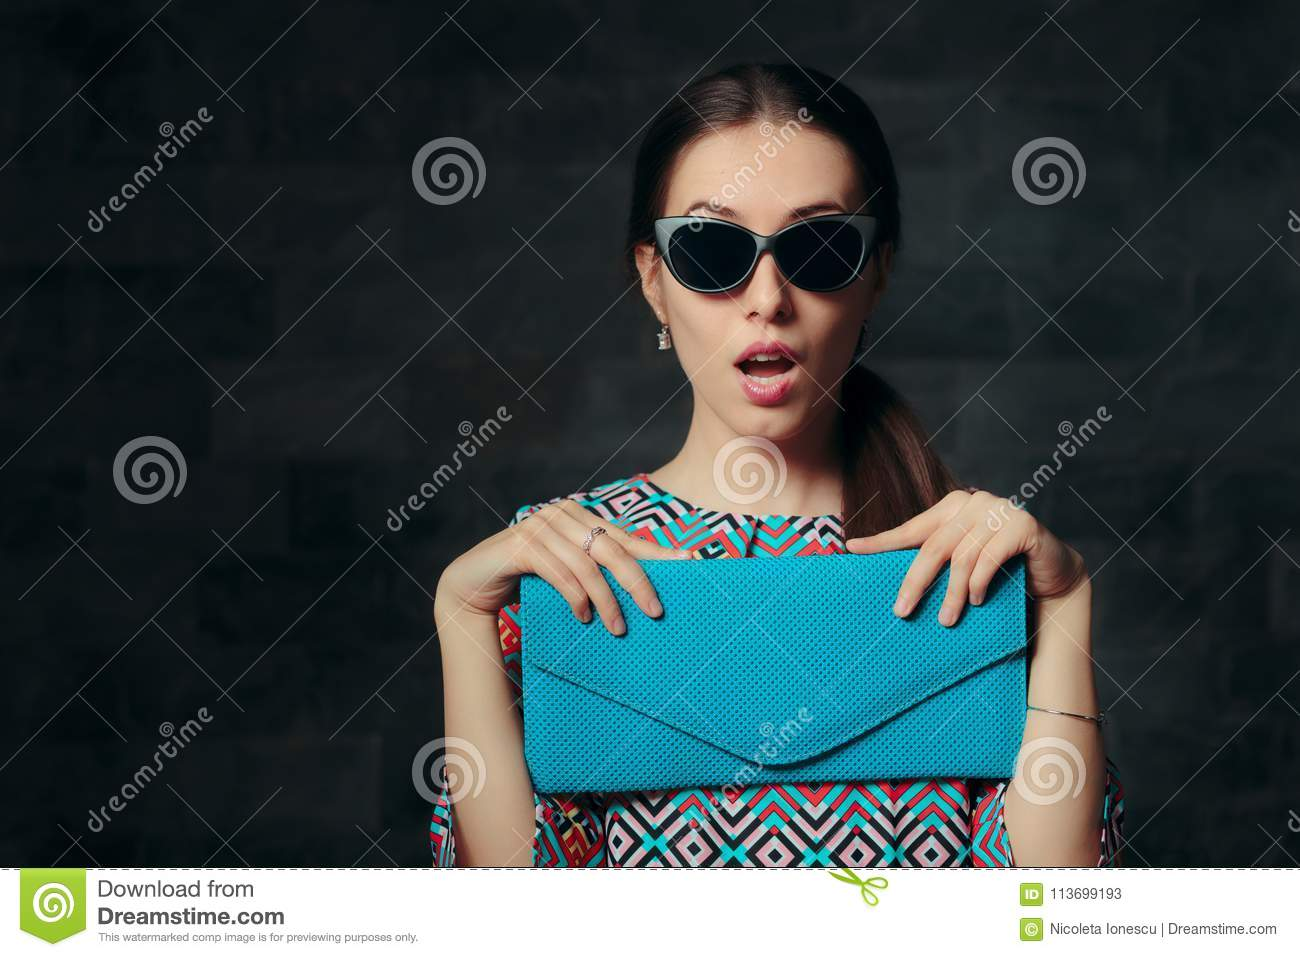 Elegant Woman with Retro Cat Eye Sunglasses and Clutch Purse